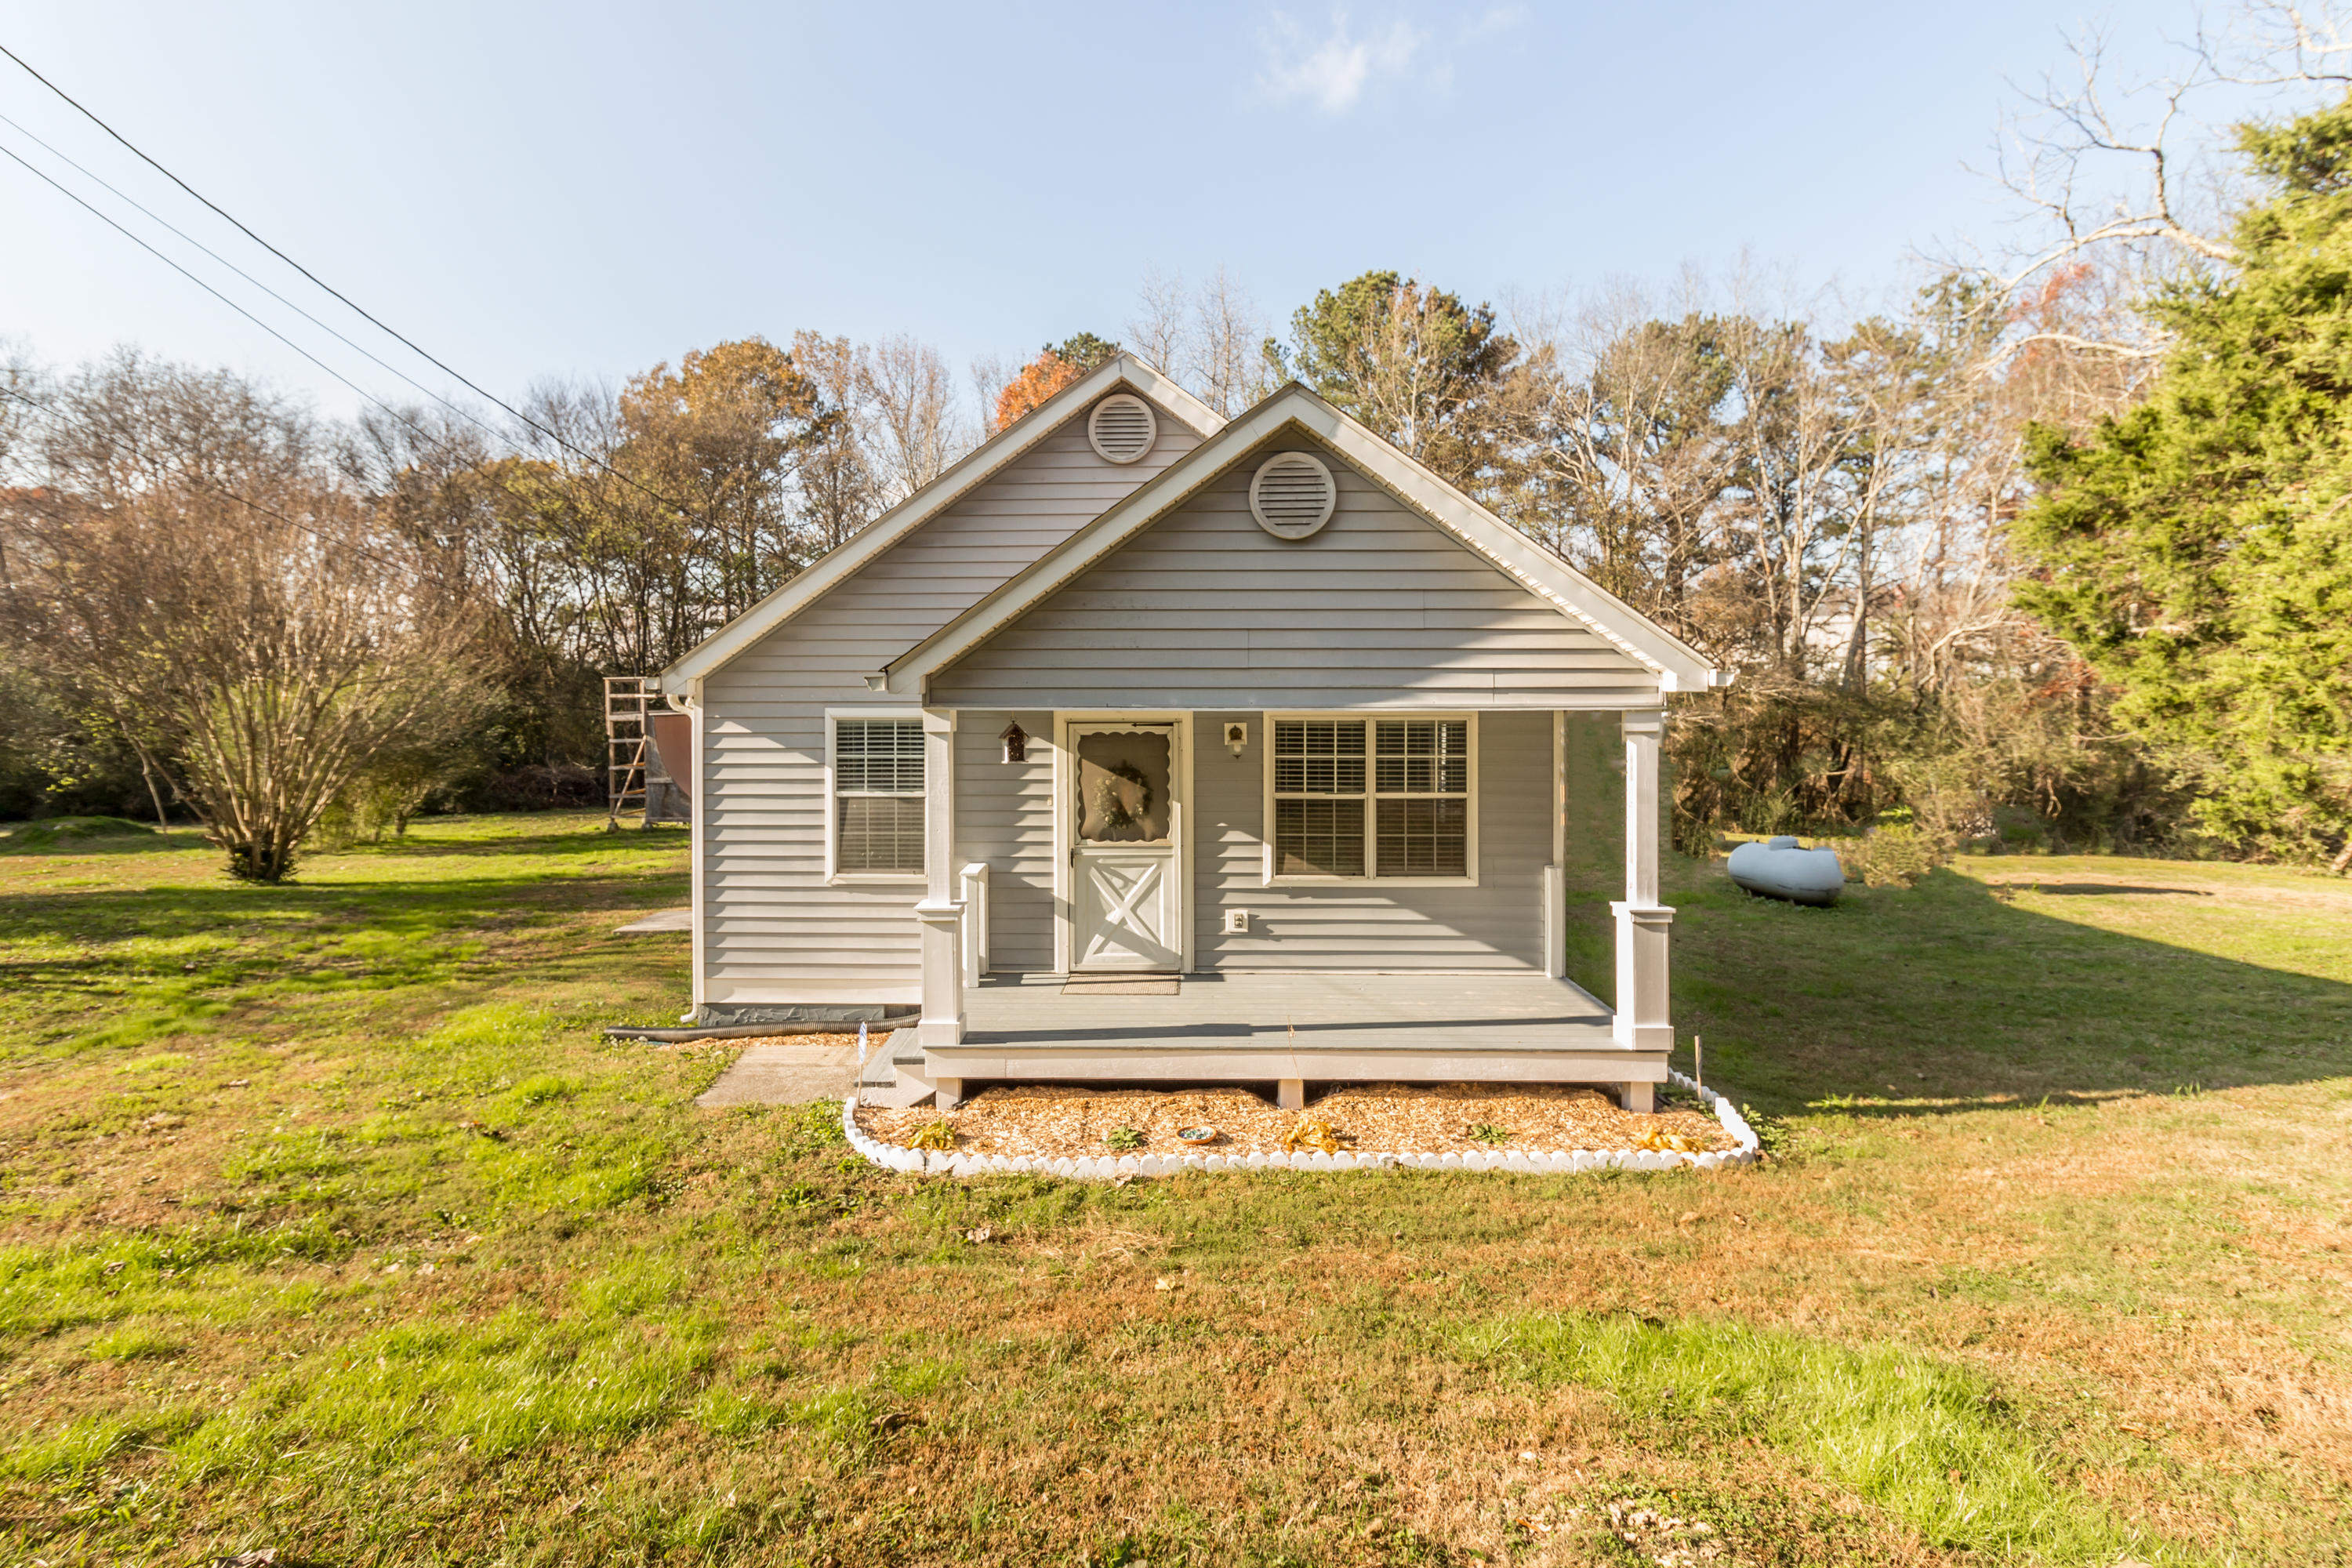 8215 Old Cleveland Pike, Ooltewah, TN 37363